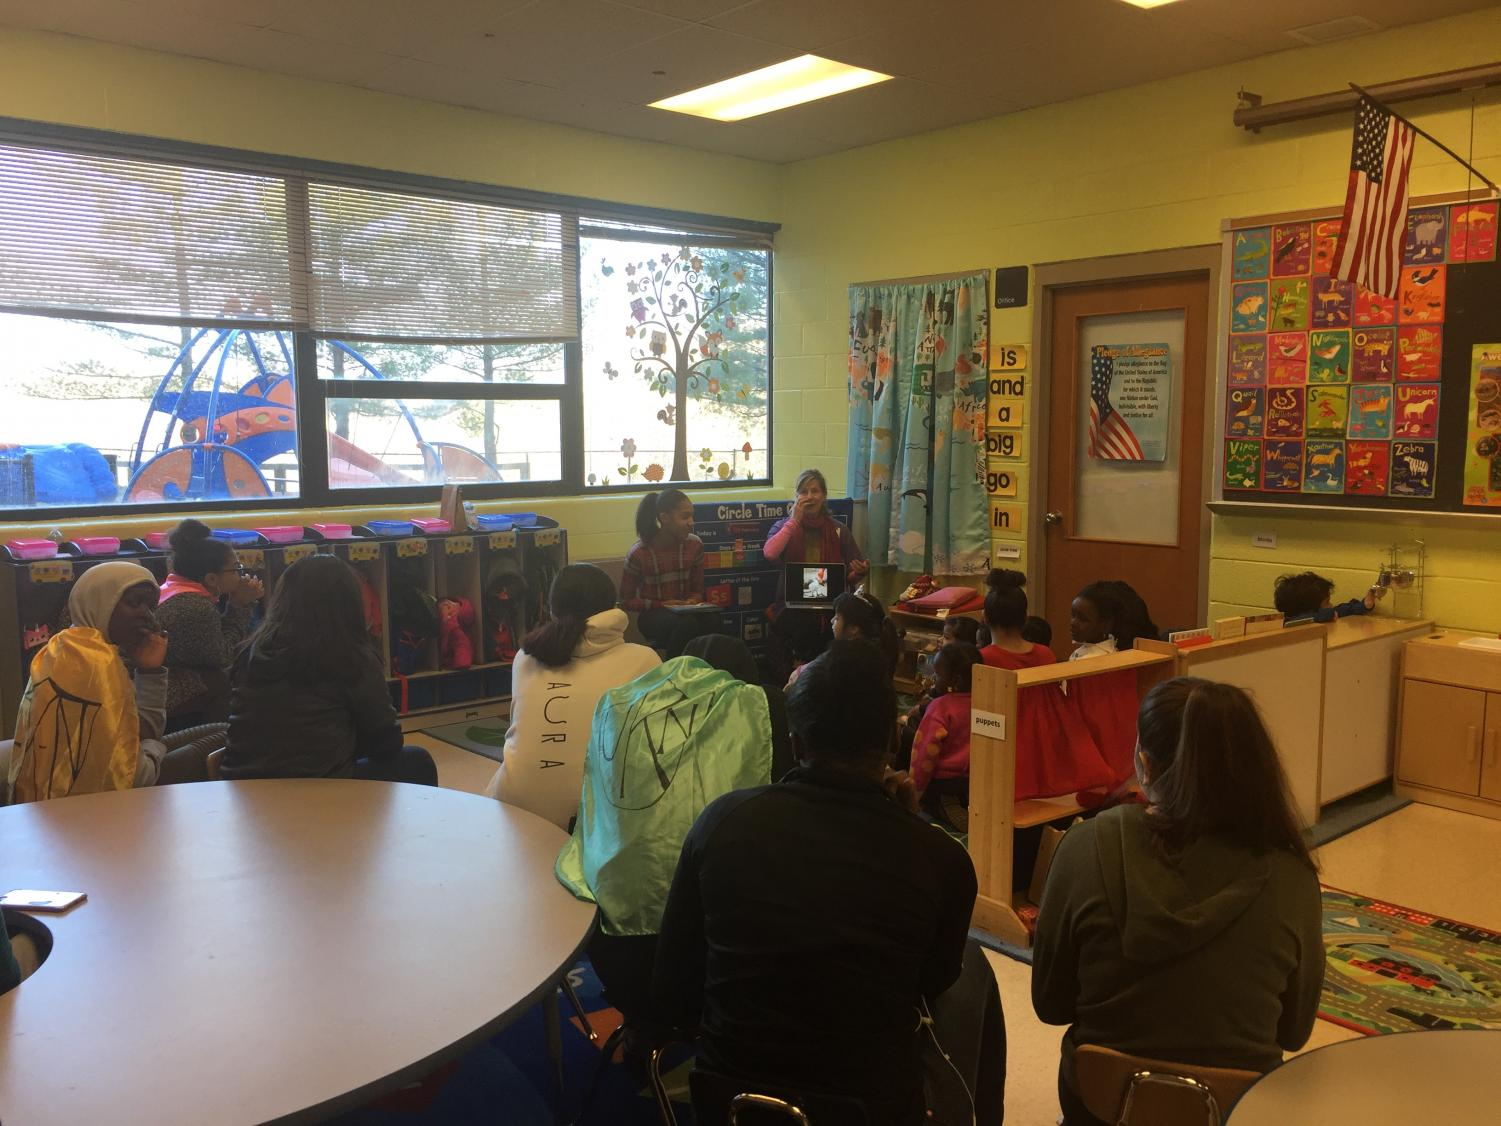 The+child+Deve+program+at+WMHS+gets+a+visit+from+author+Kat+Kronenburg+to+talk+about+her+books+and+stories+from+her+travels